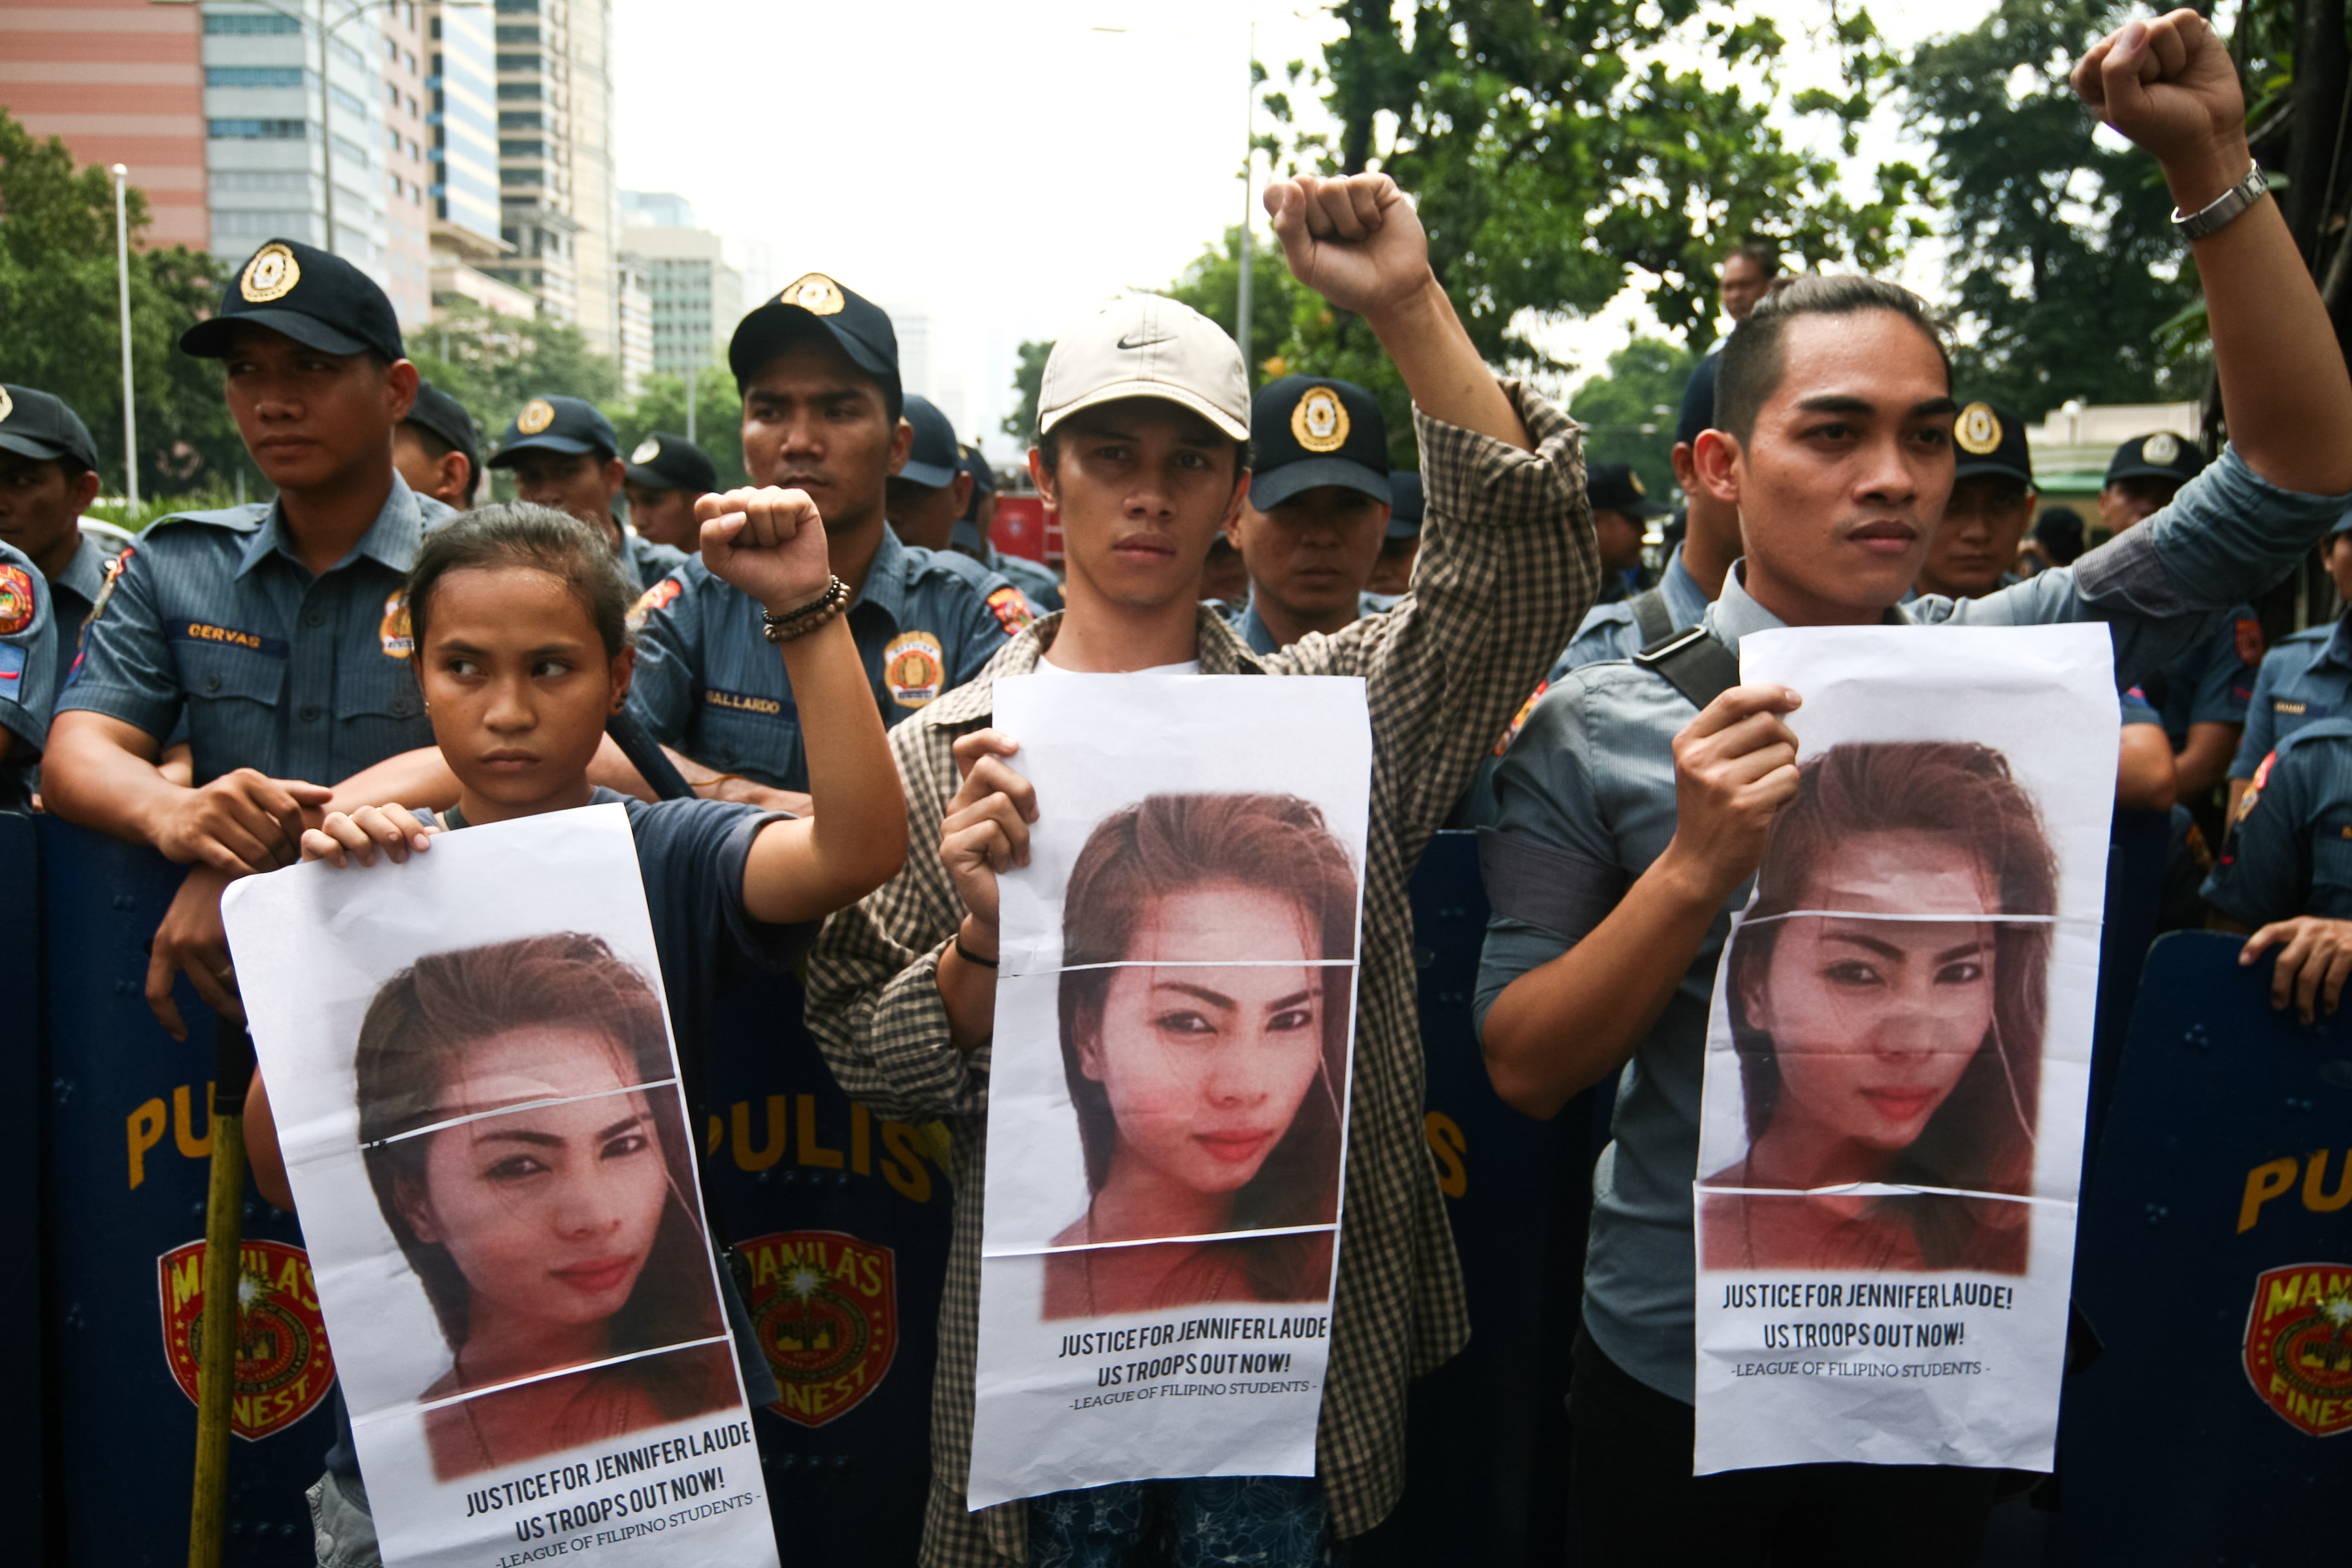 Members of the League of Filipino Students protest frustrations in front of the U.S. embassy in Manila over the treatment of the convicted killer of Jennifer Laude on Oct. 11, 2016.